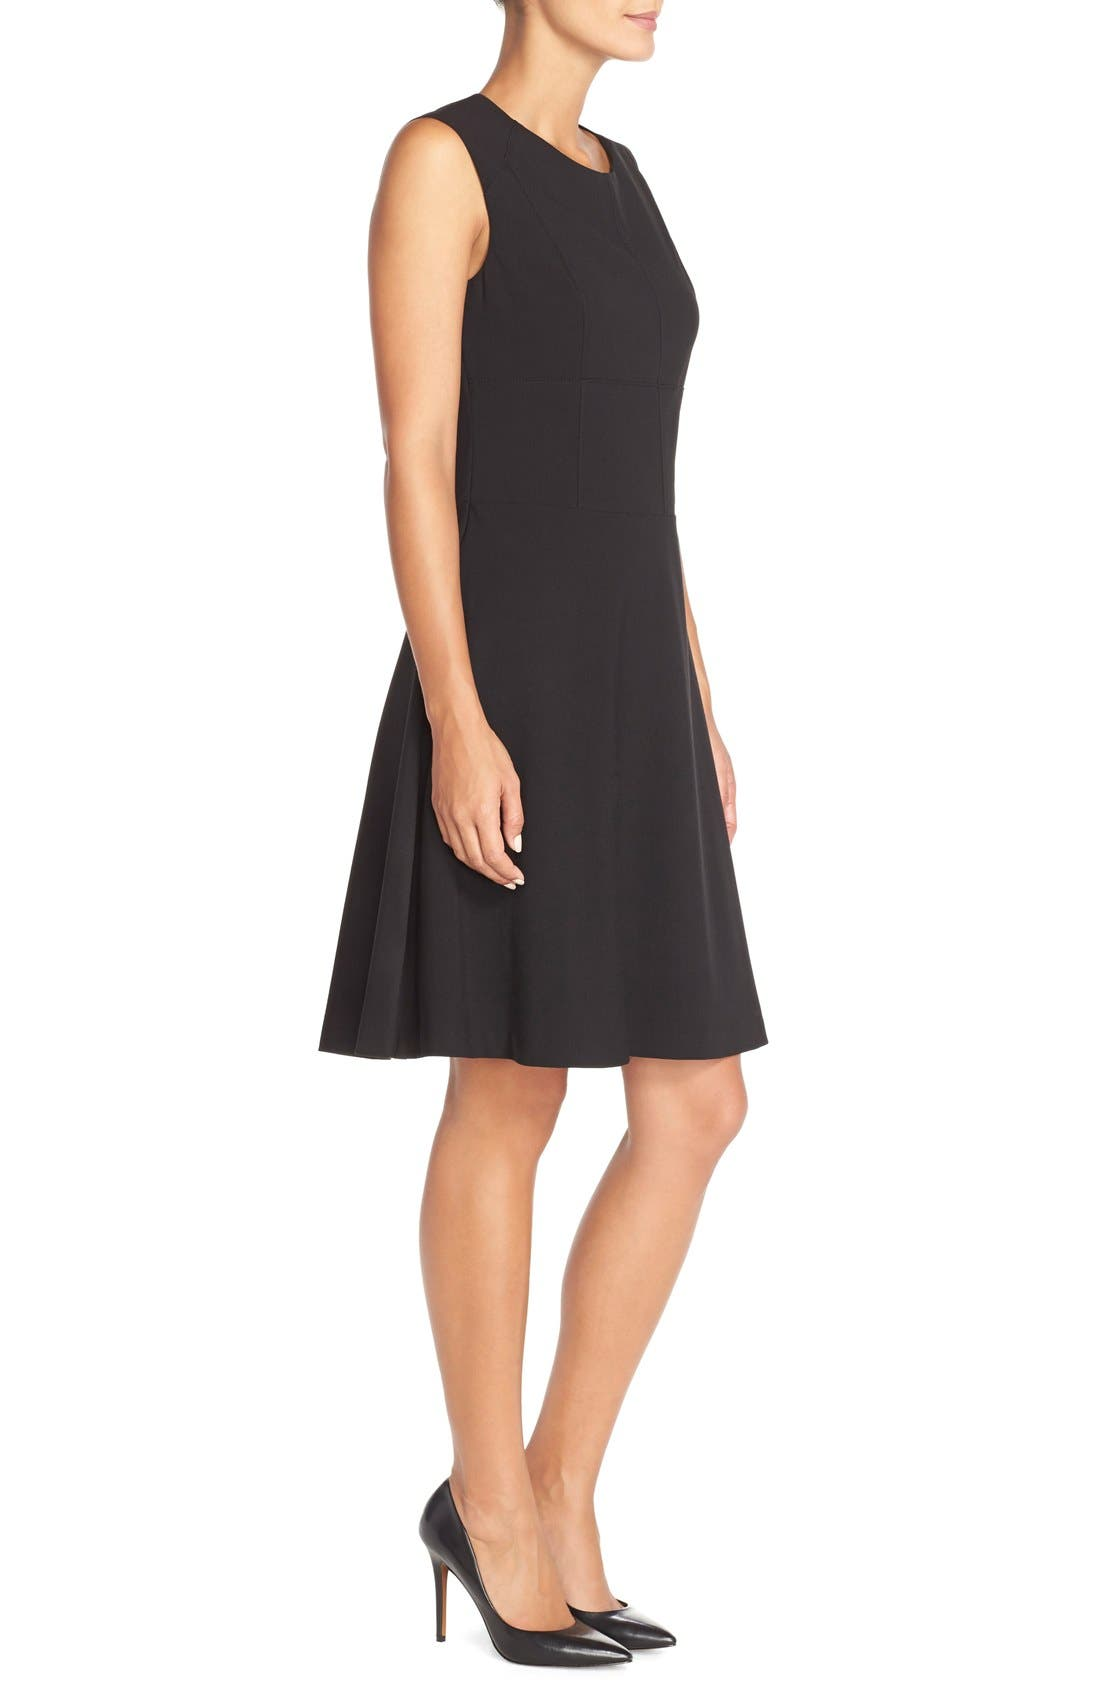 Alternate Image 3  - Marc New York 'Lux' Stretch Fit & Flare Dress